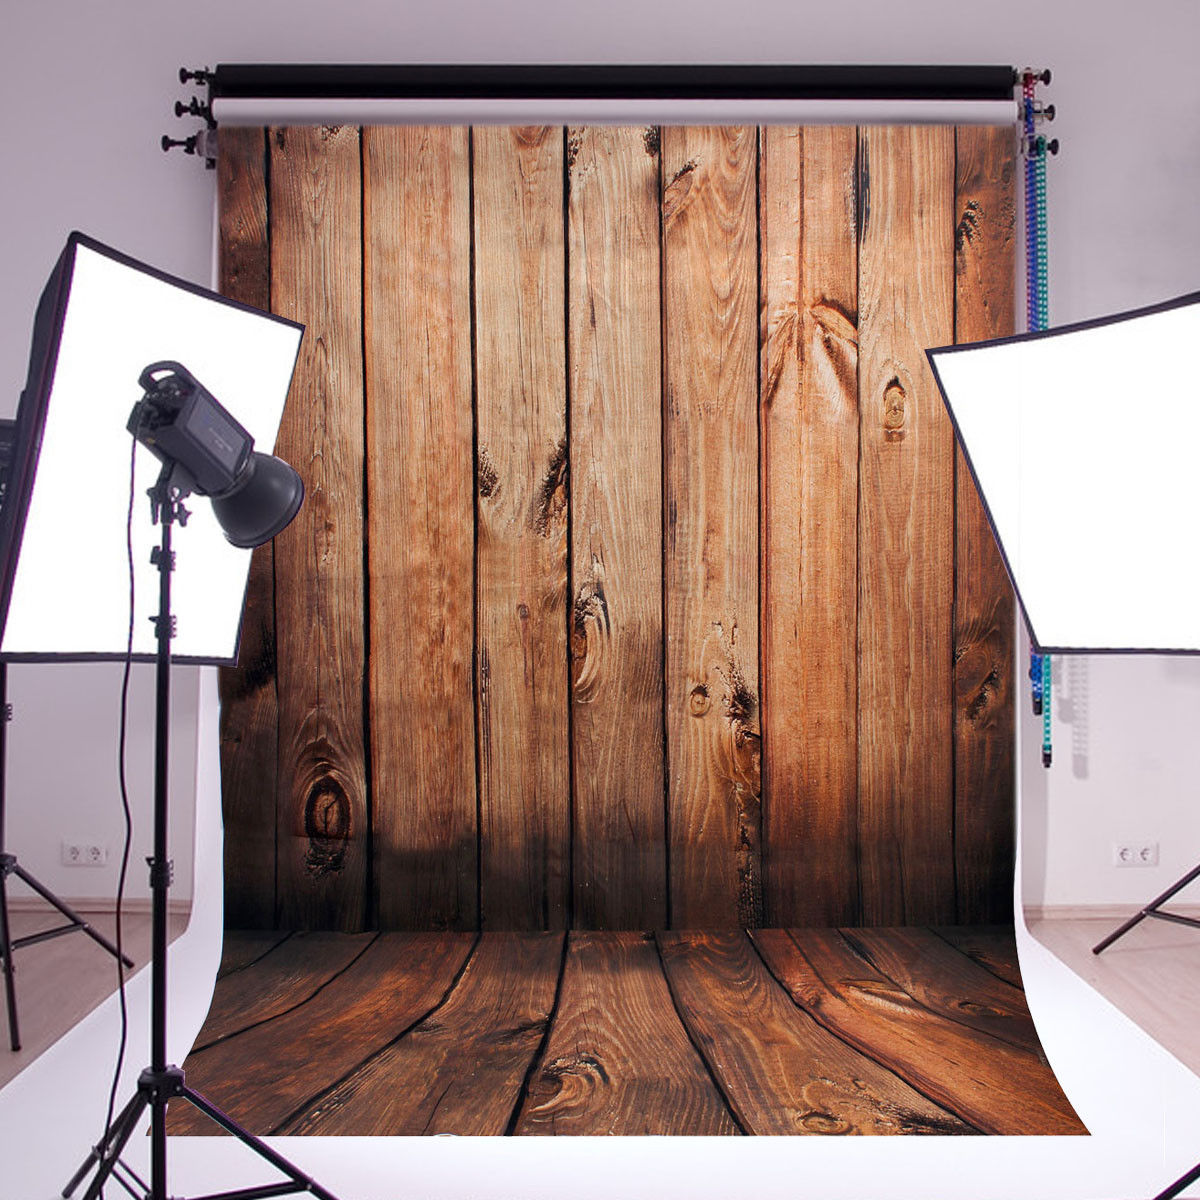 Photography Backdrops vinyl background for photo studio vintage wood baby background 2.1*1.5m Hot Sale easter day basket branch bunny photo studio background easter photography backdrops page 4